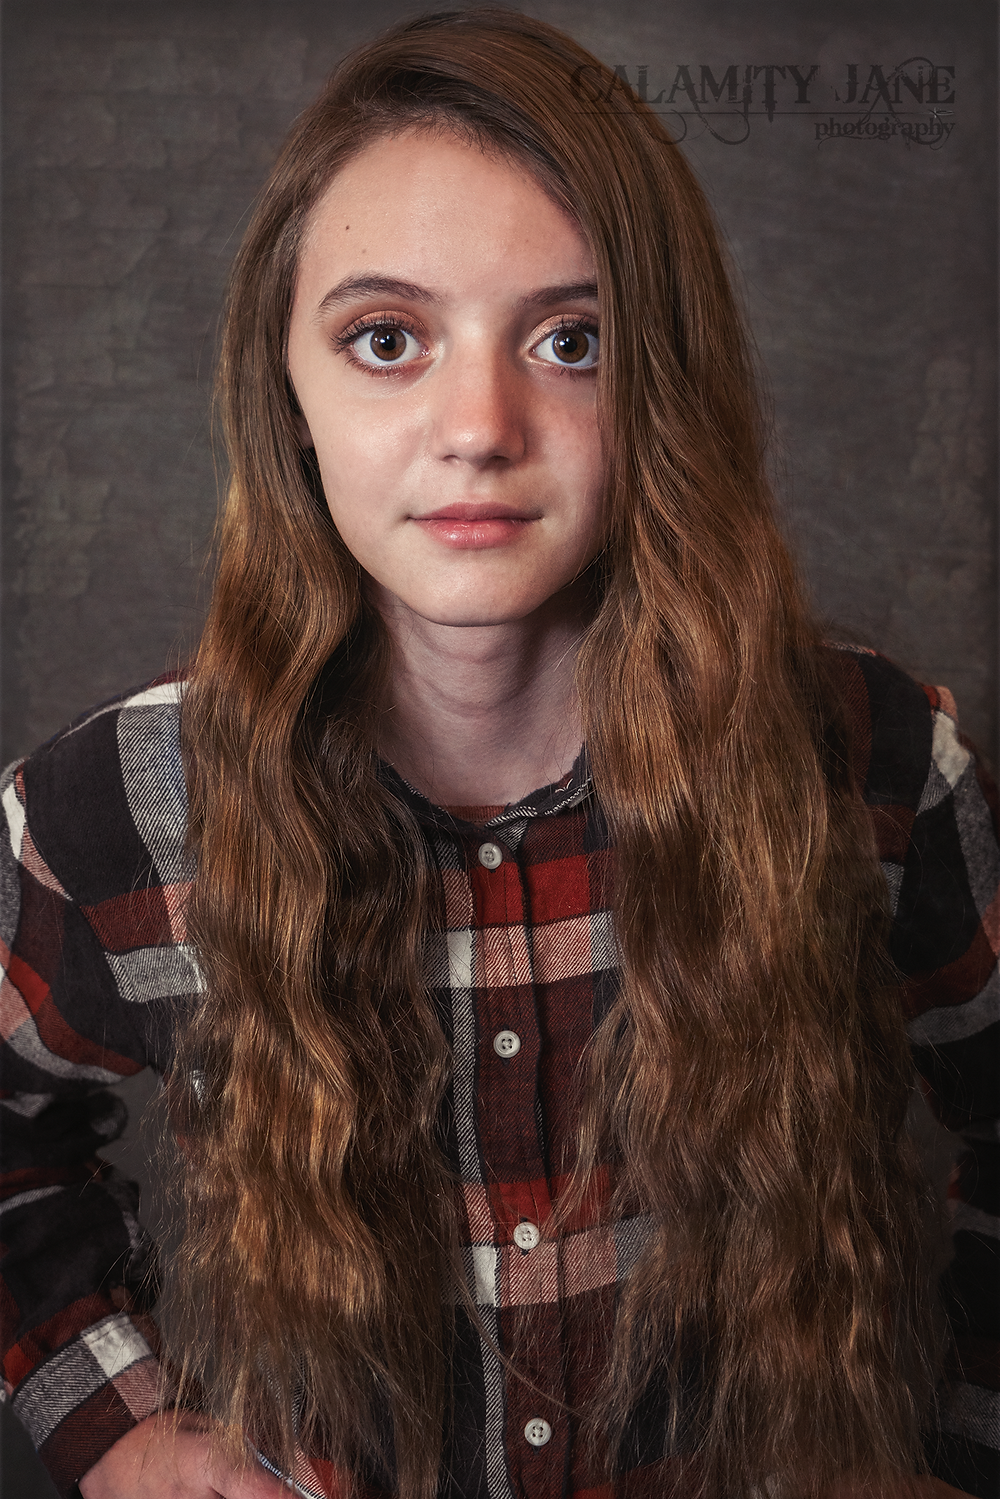 Teen Portrait by Calamity Jane Photography Studio Las Vegas